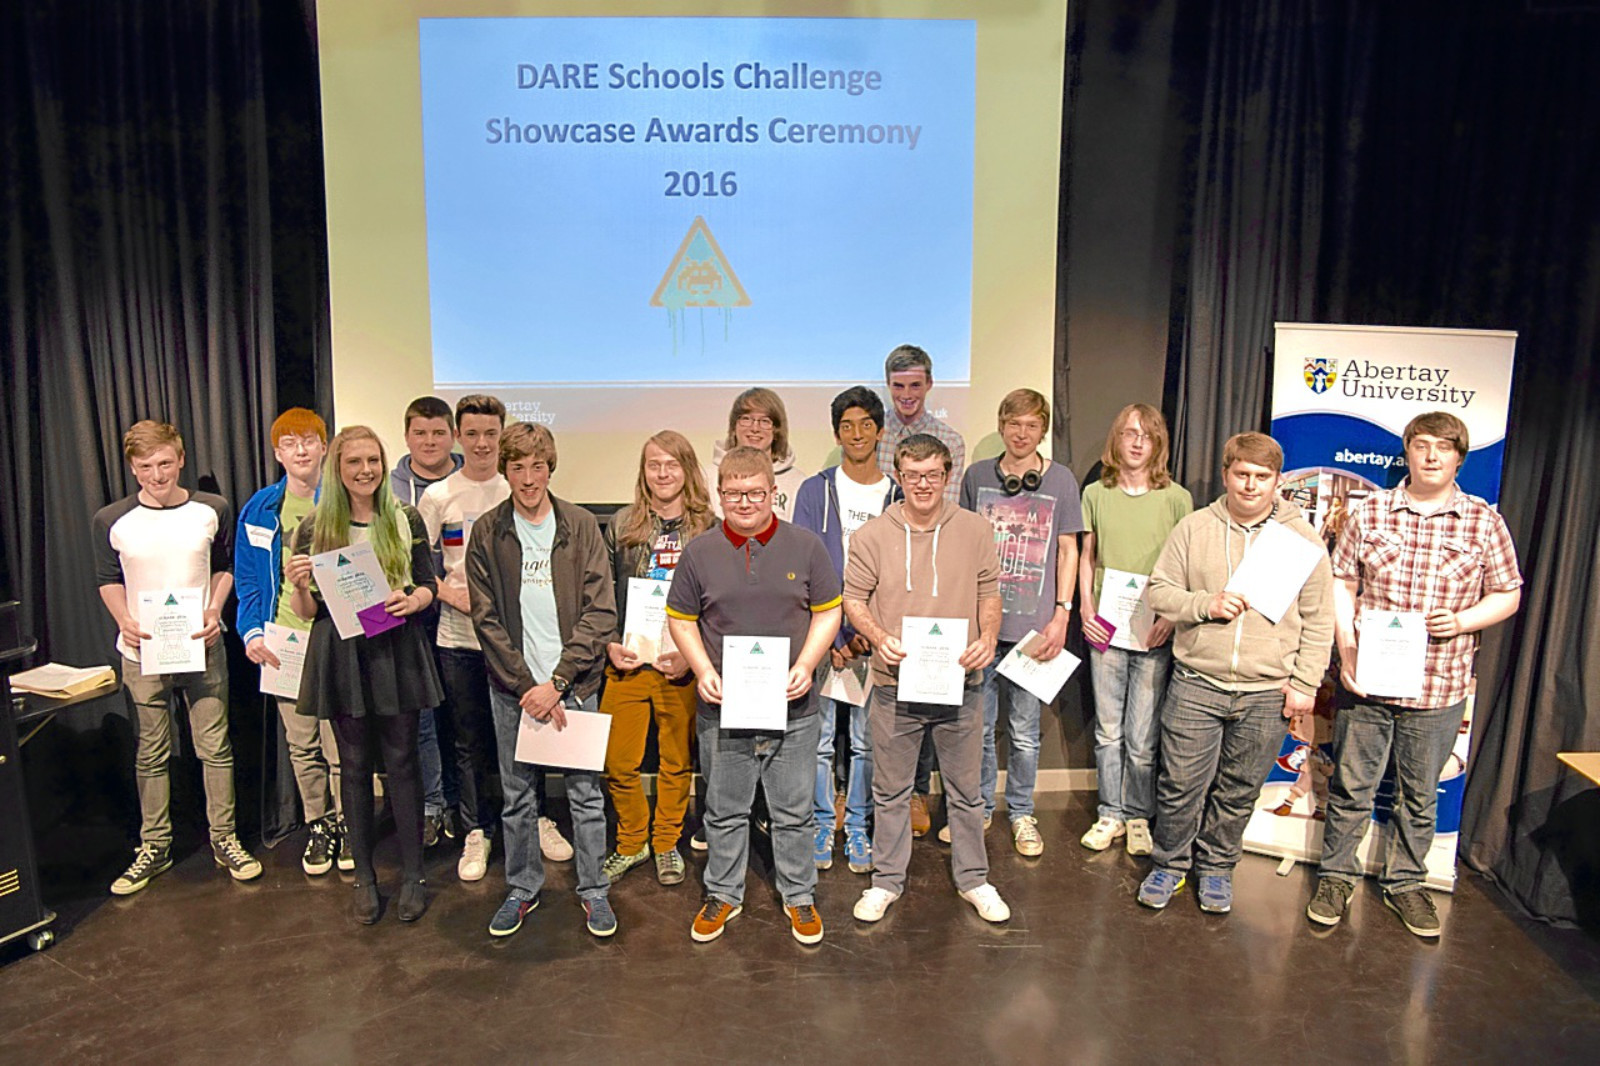 Pupils from Craigie, St Paul's, Harris, Grove and Baldragon took part in the 13th annual Dare Schools Team Challenge at Abertay University.